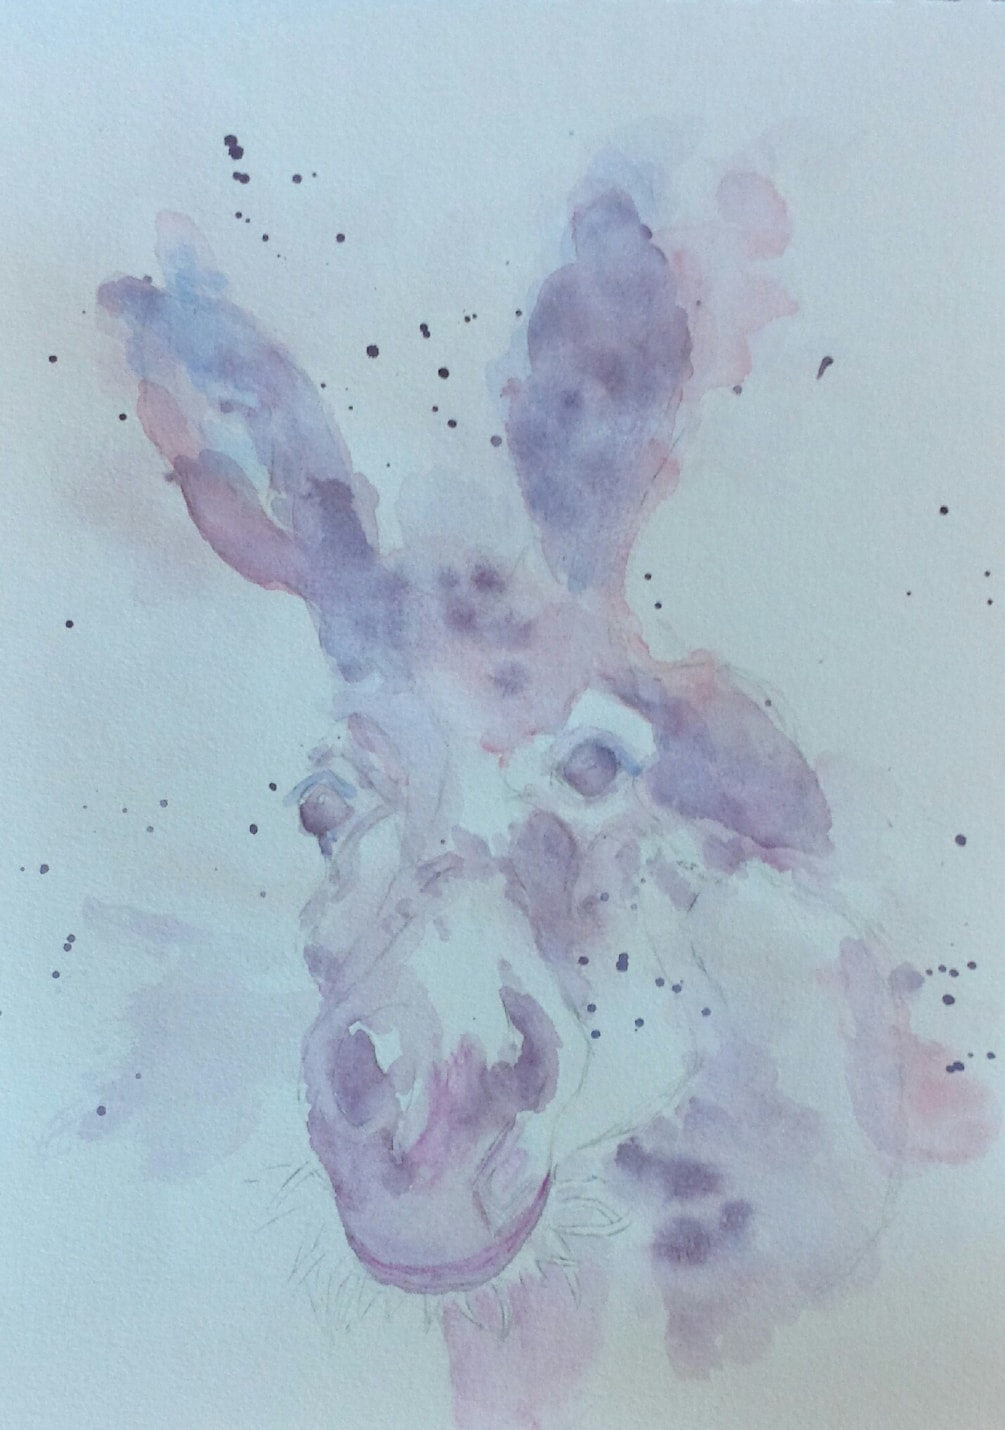 Liz chaderton watercolour plus exercise from July 2018 issue